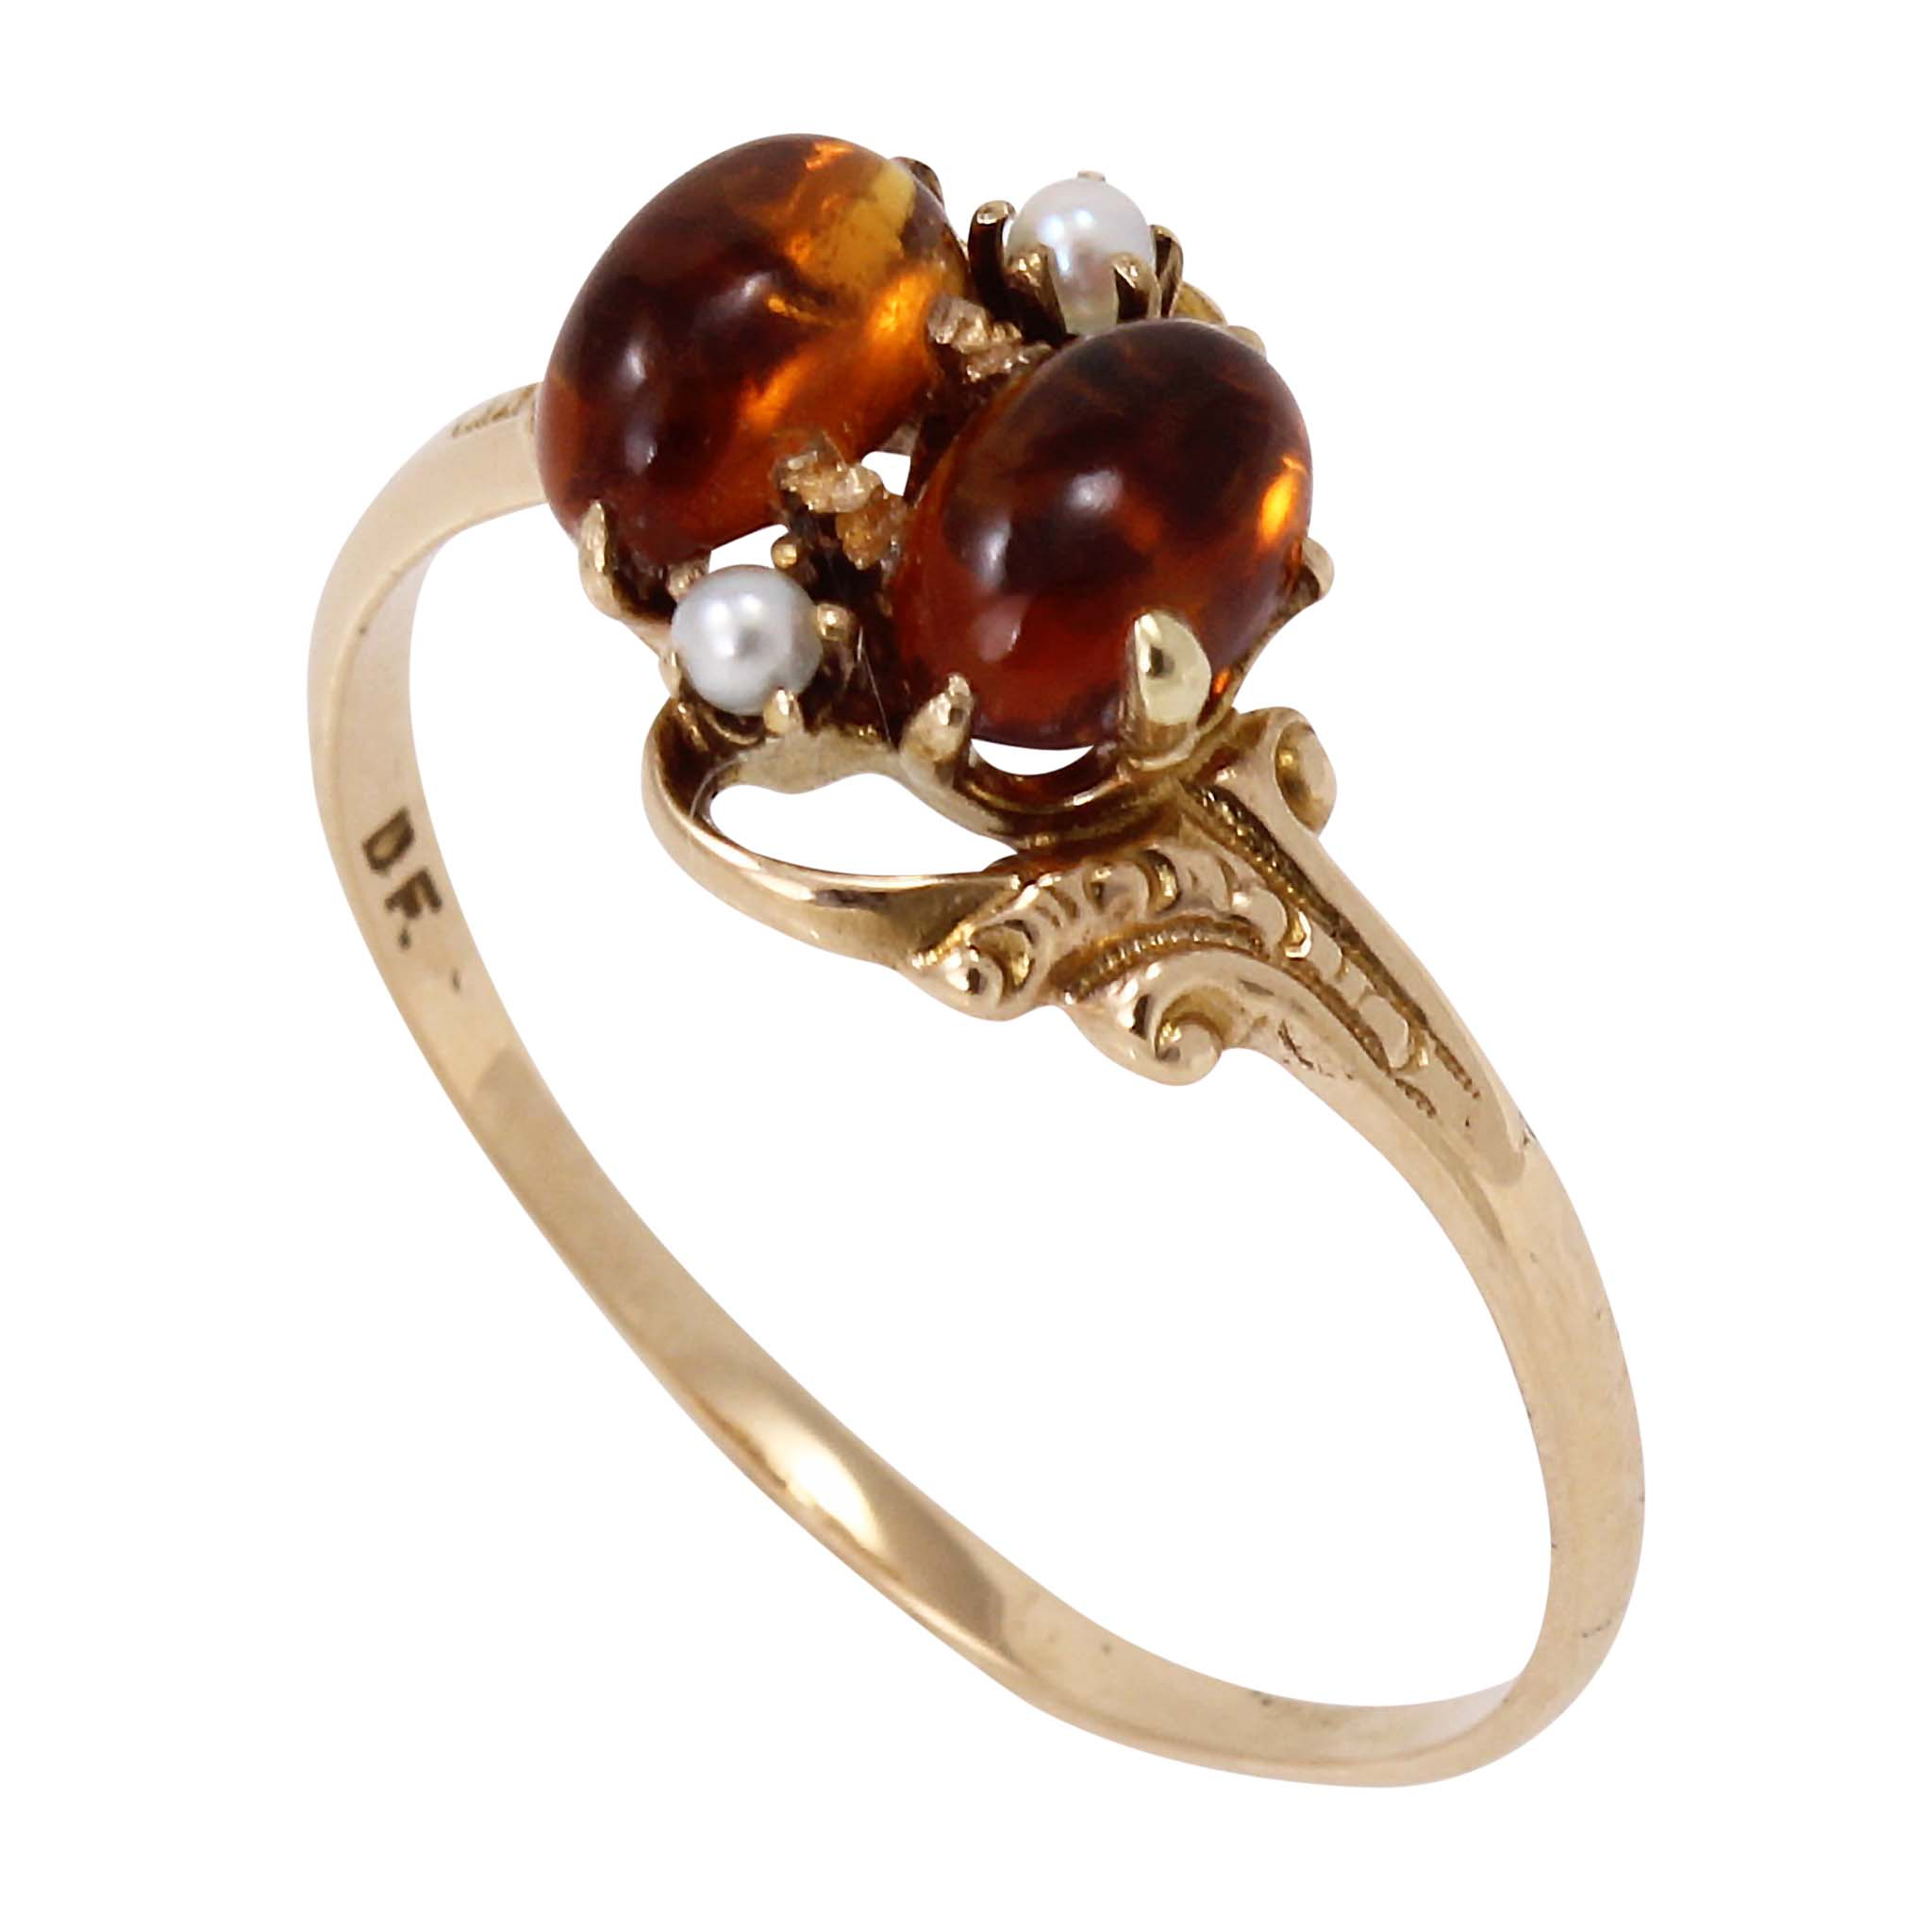 Victorian 14k Yellow Gold Citrine and Pearl Ring